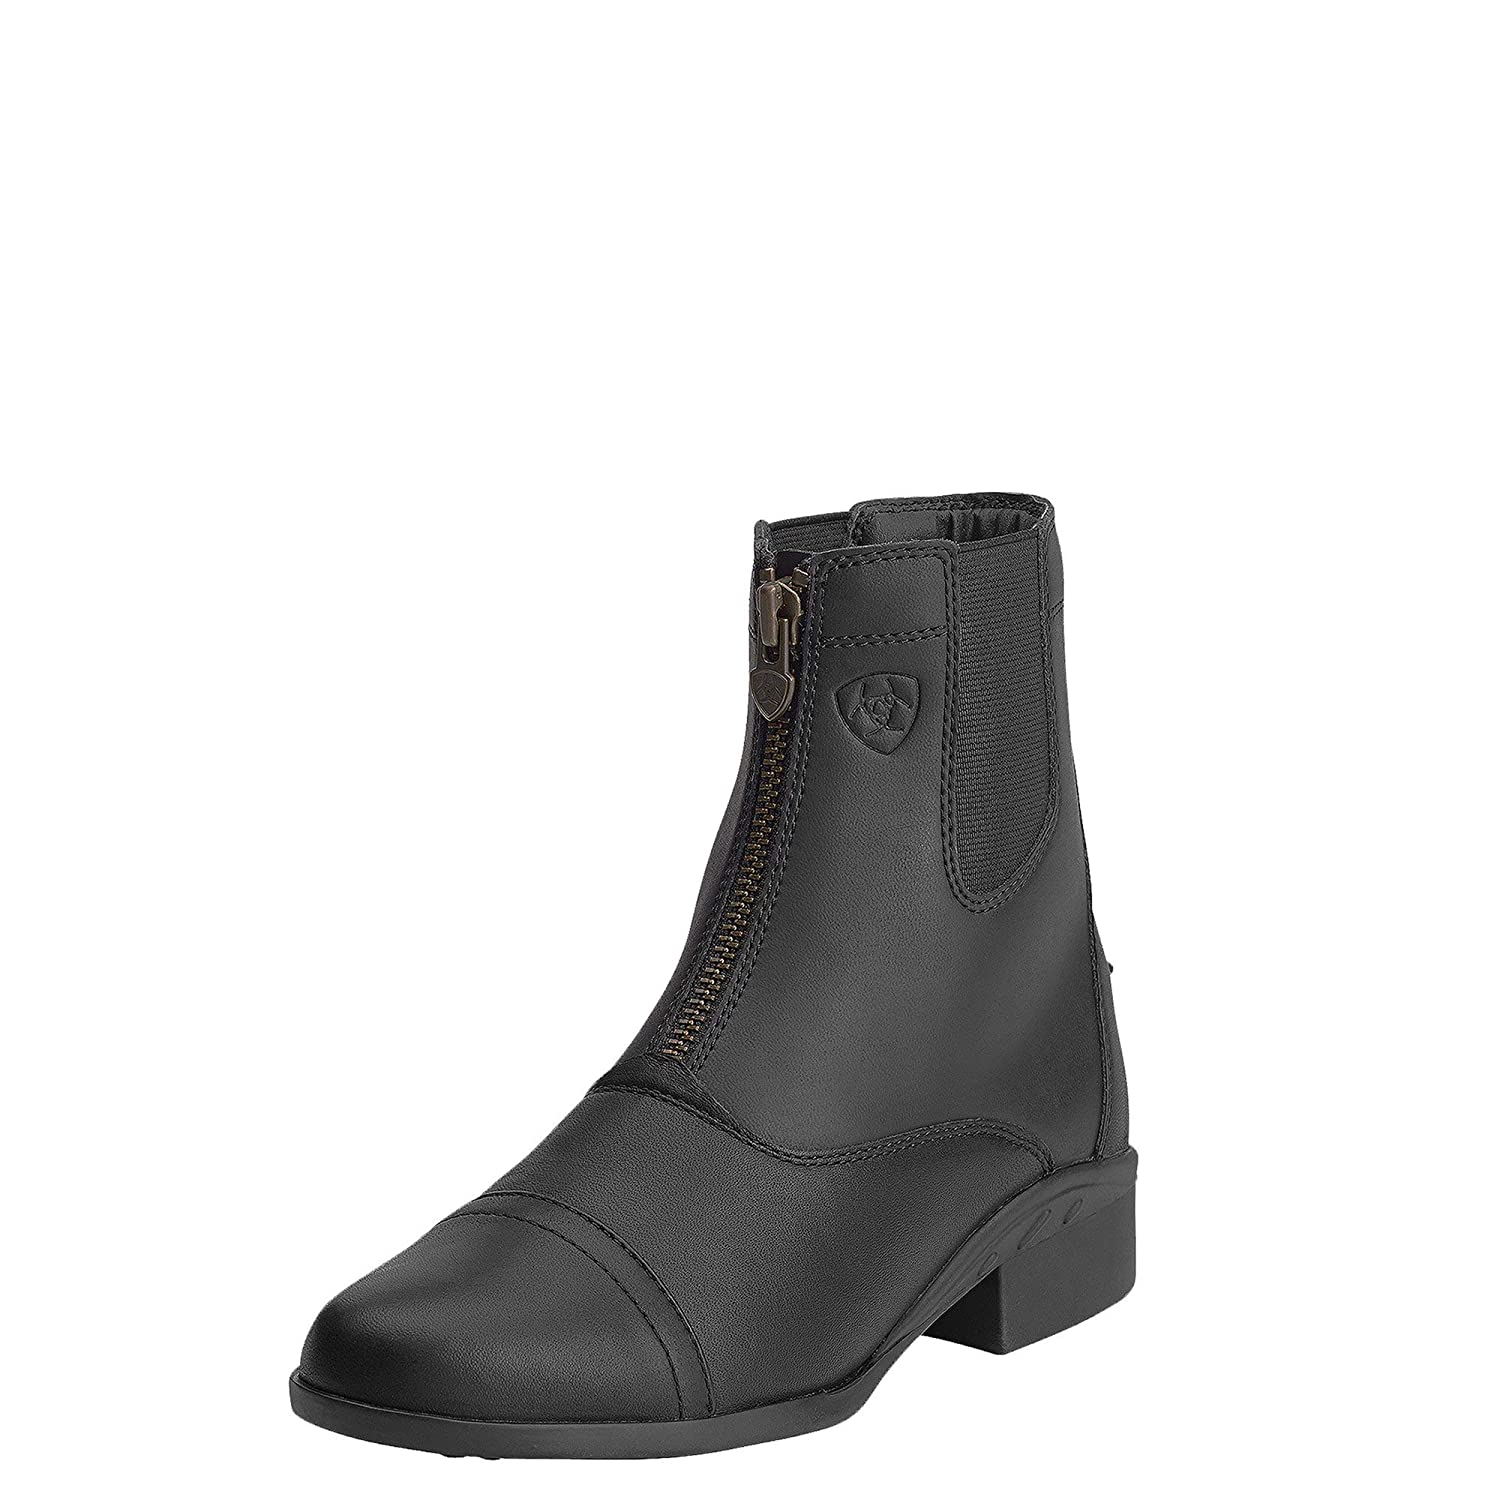 763881fd03ff79 Amazon.com  ARIAT Women s Scout Zip Paddock Boot  Clothing